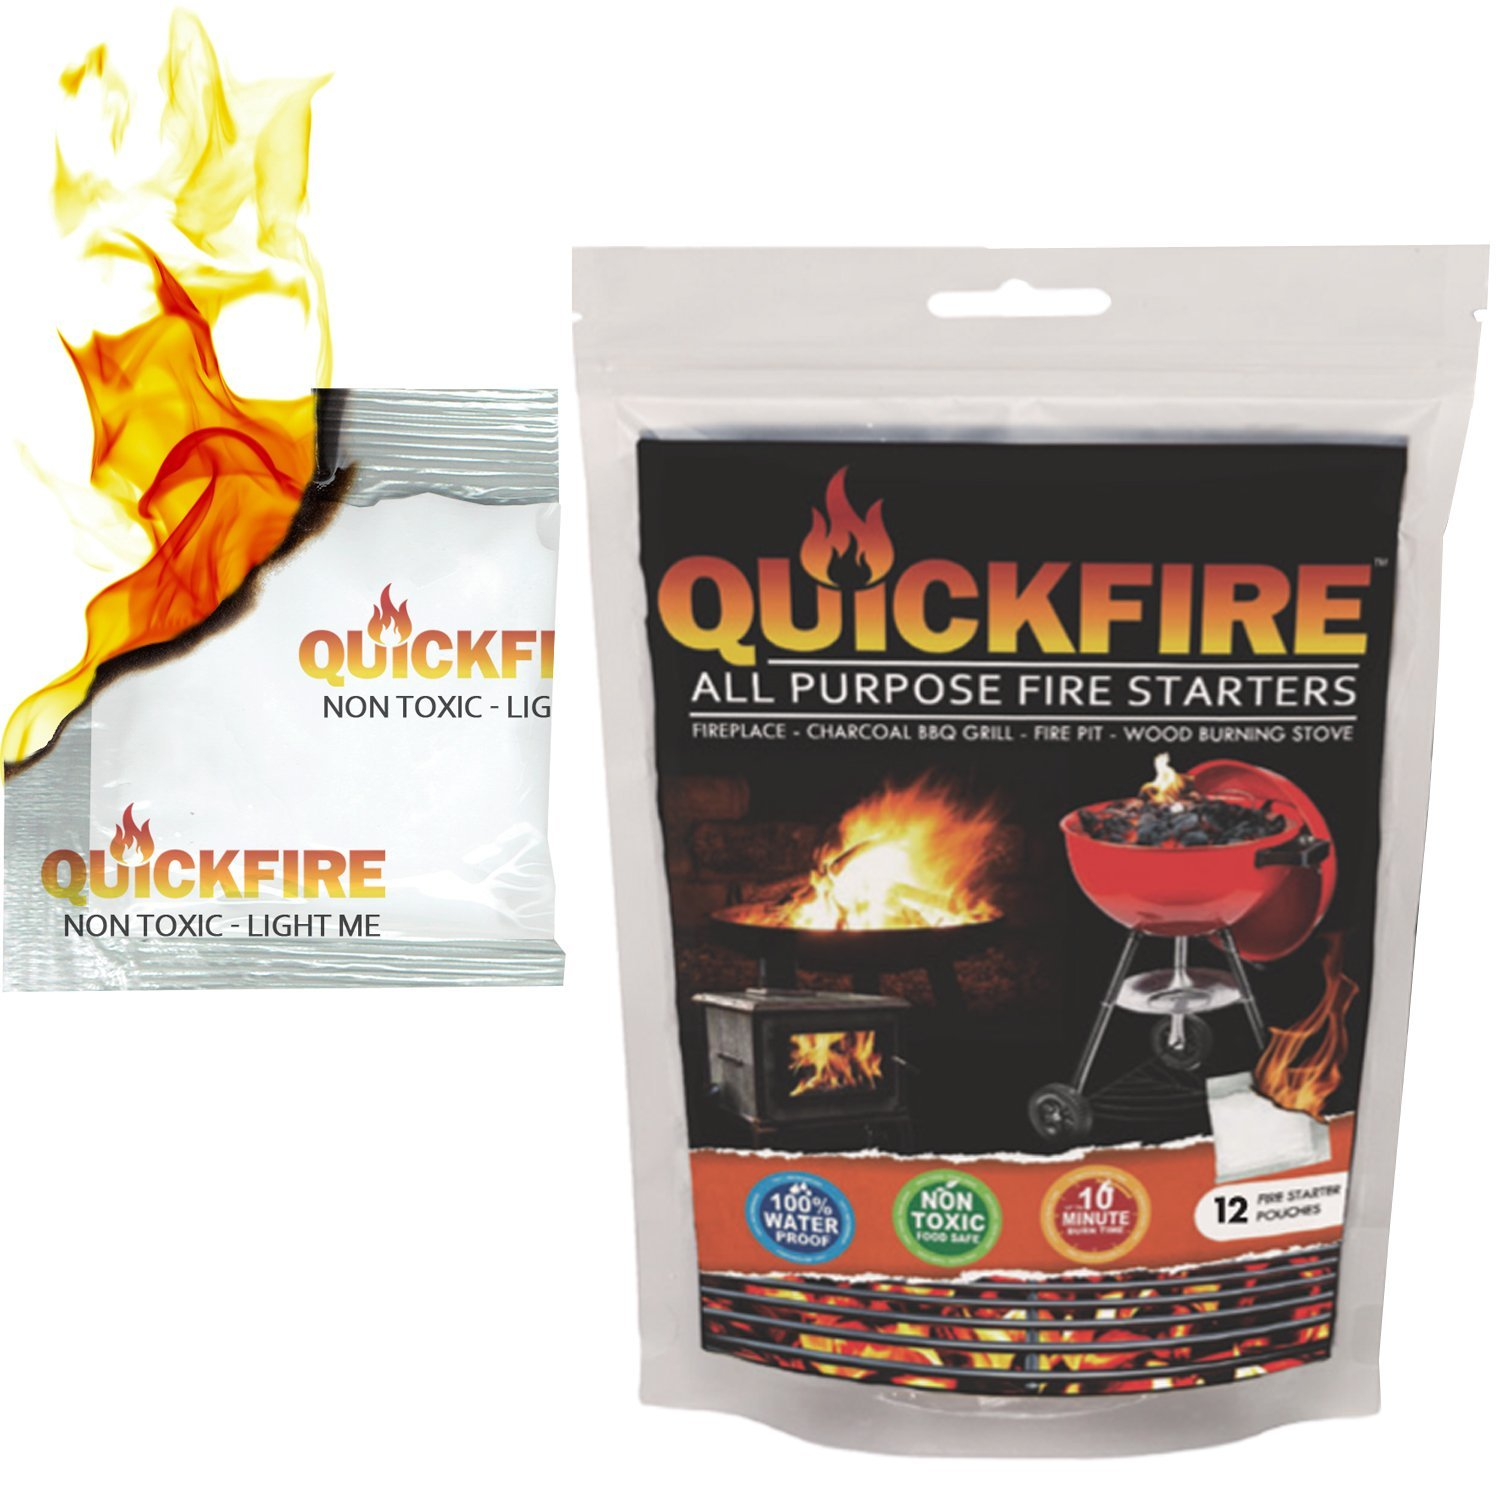 QUICKFIRE Instant Fire Starters. Voted #1 Camping and Charcoal BBQ Fire Starter of 2016, Waterproof, Odorless and Non-Toxic, Starter, 12 Pouches BL Corp Pack of 12